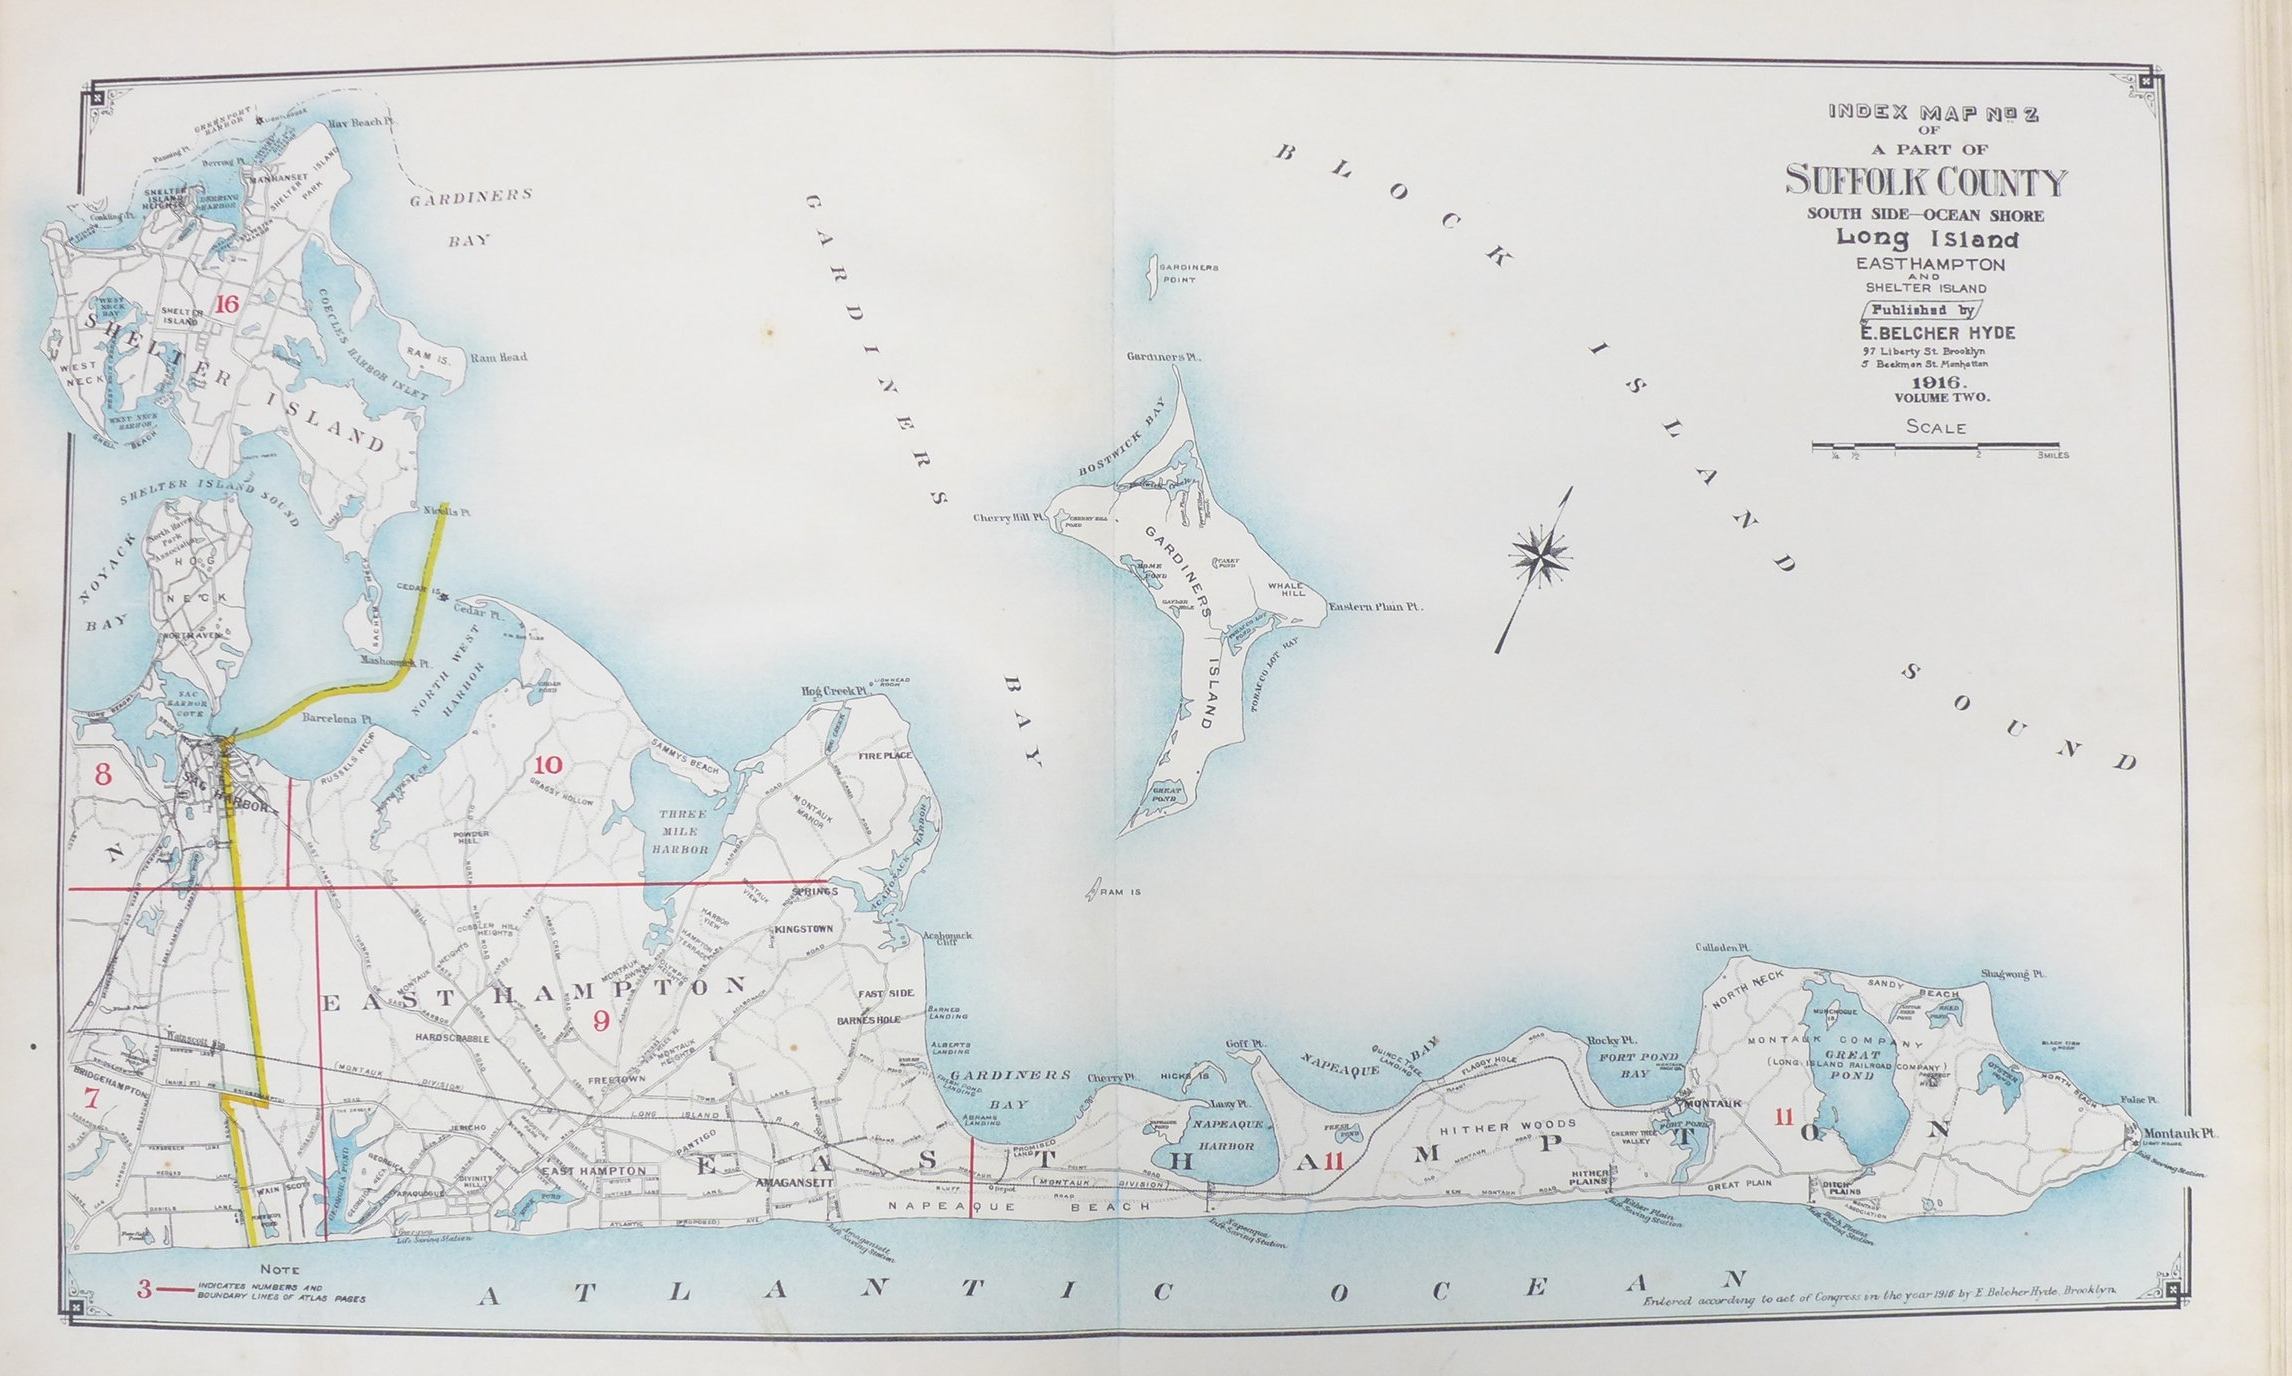 The East End of Long Island, from East Hampton to Montauk.The Beecher Map 1916.